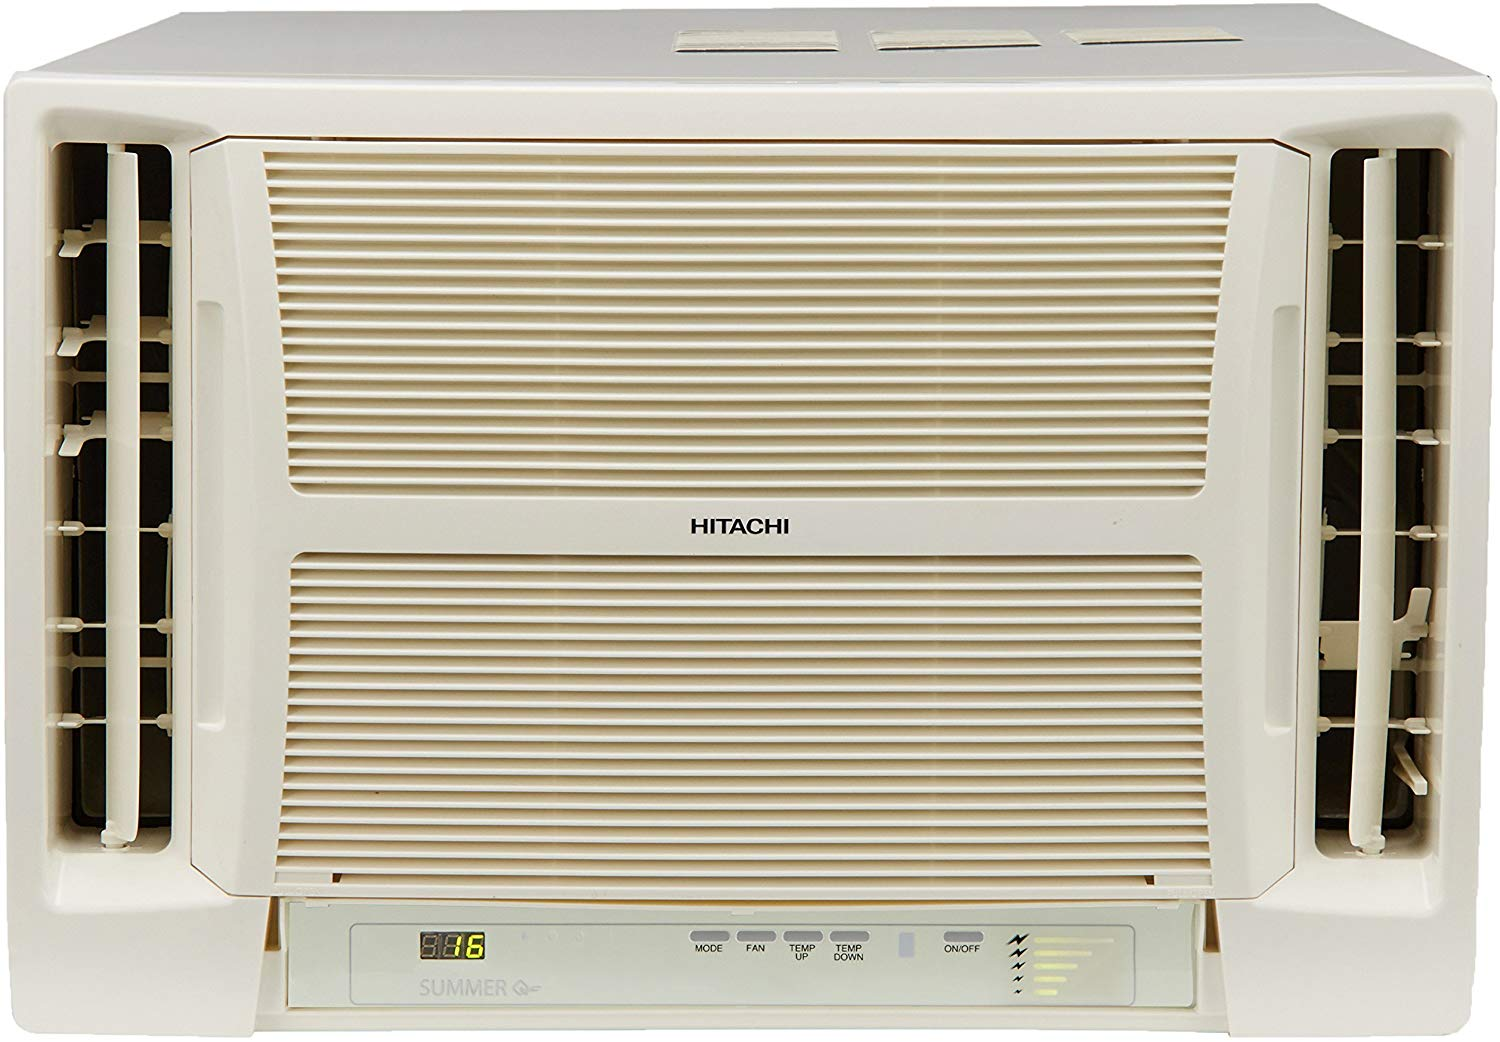 Hitachi 2.0 Ton 2 Star Window AC (Copper,SUMMER RAV222HUD White) get best offers deals free and coupons online at buythevalue.in